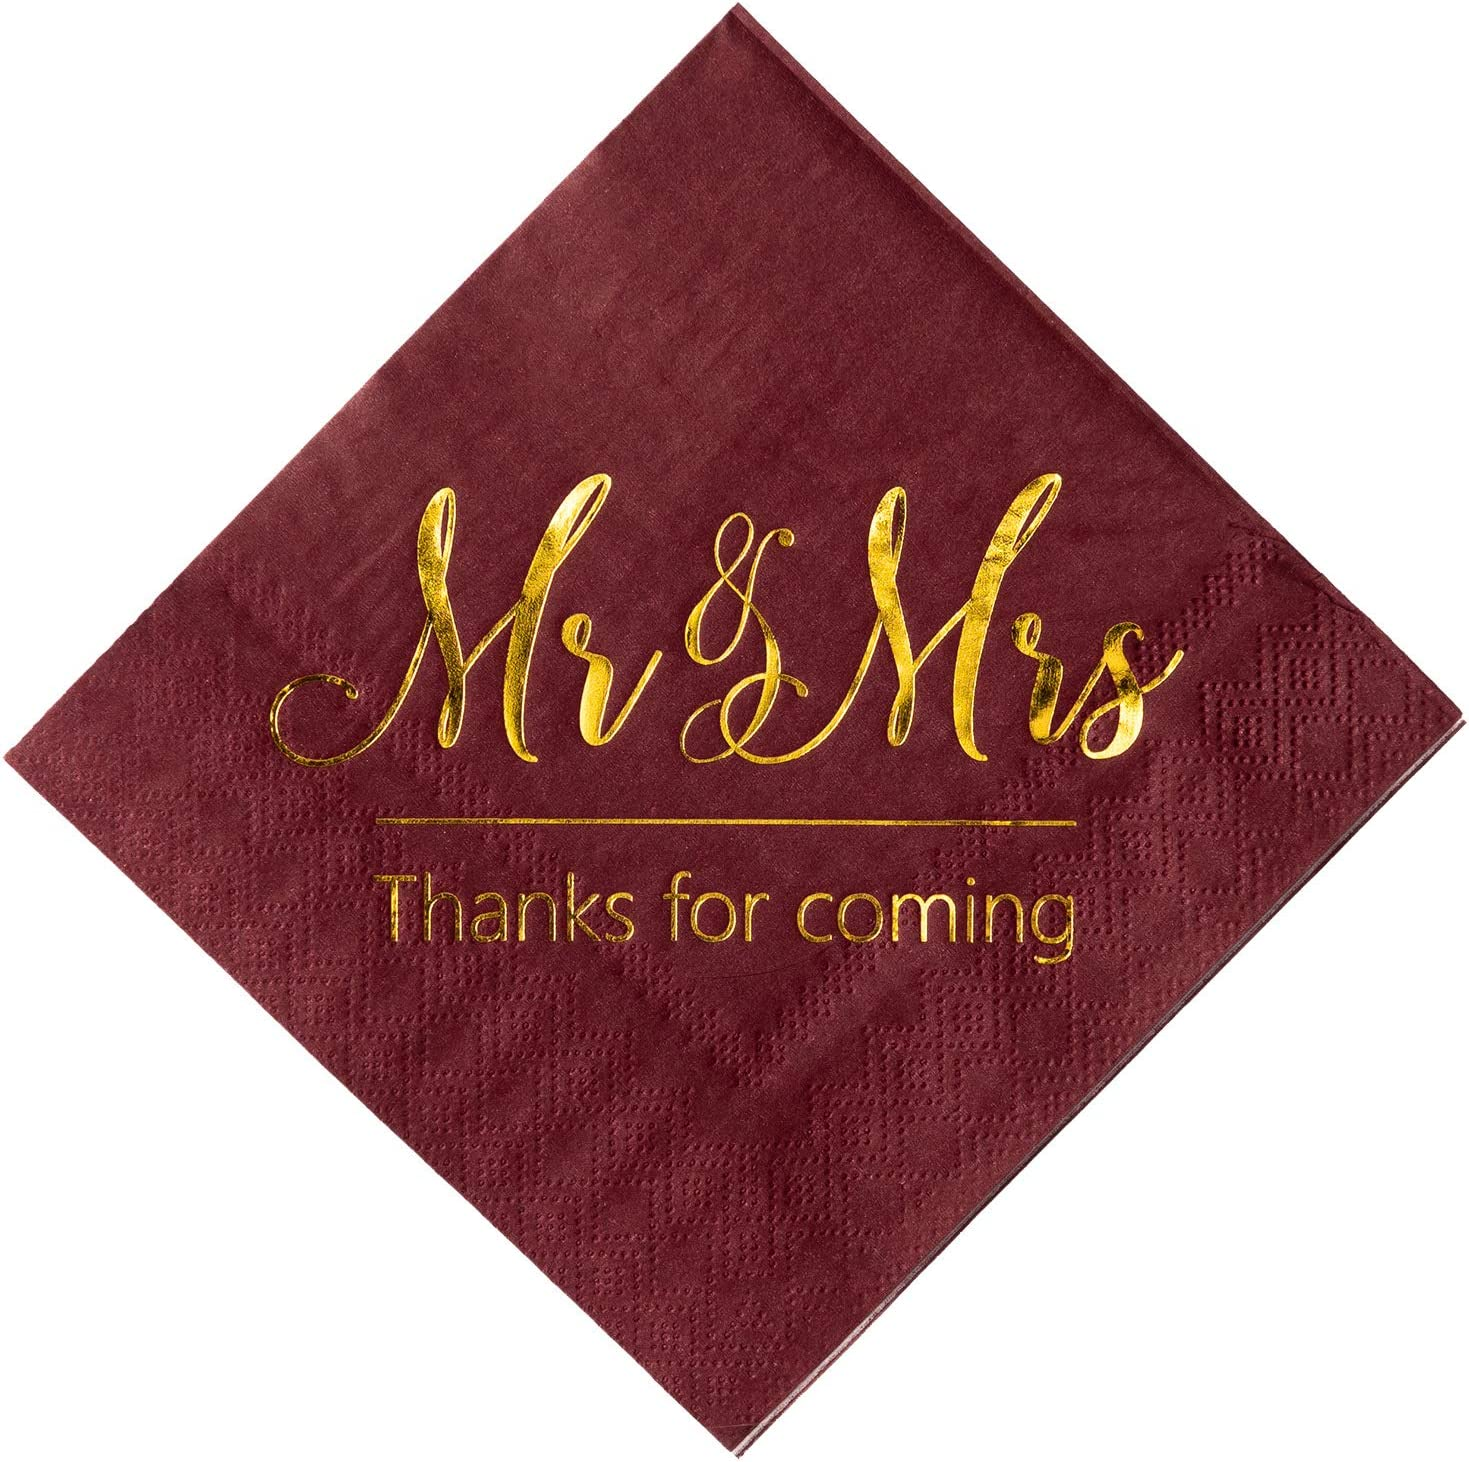 Crisky Wedding Napkins Mr Mrs Burgundy Gold Cocktail Beverage Dessert  Napkins for Wedding Shower Engagement Party Decorations, 8 Pcs, 8-Ply